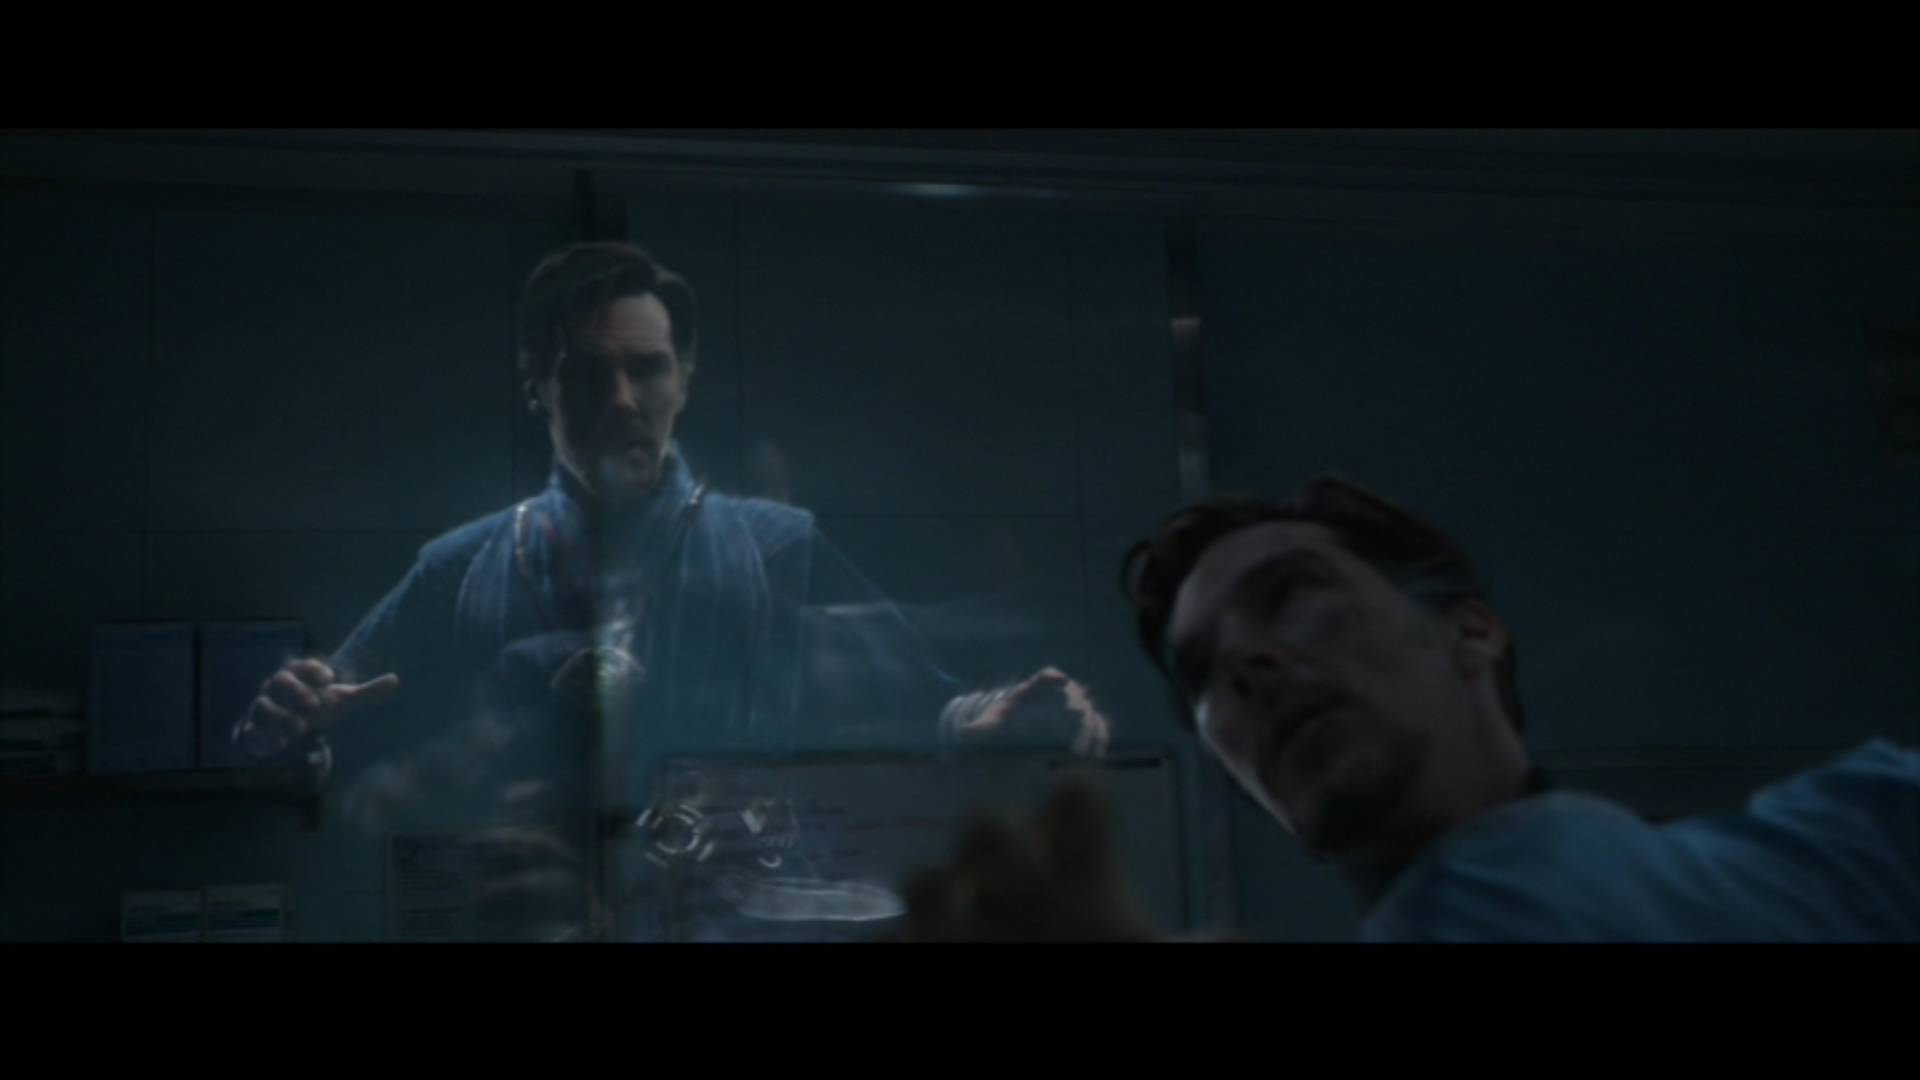 Figure 5: When Strange and Palmer operate on the Ancient One, Strange is dressed in medical scrubs in his physical form, whereas his astral form is wearing the outfit that he donned during his mystical training in Kamar-Taj.  Doctor Strange  (Derrickson 2016), Marvel Studios/Walt Disney Studios Motion Pictures.